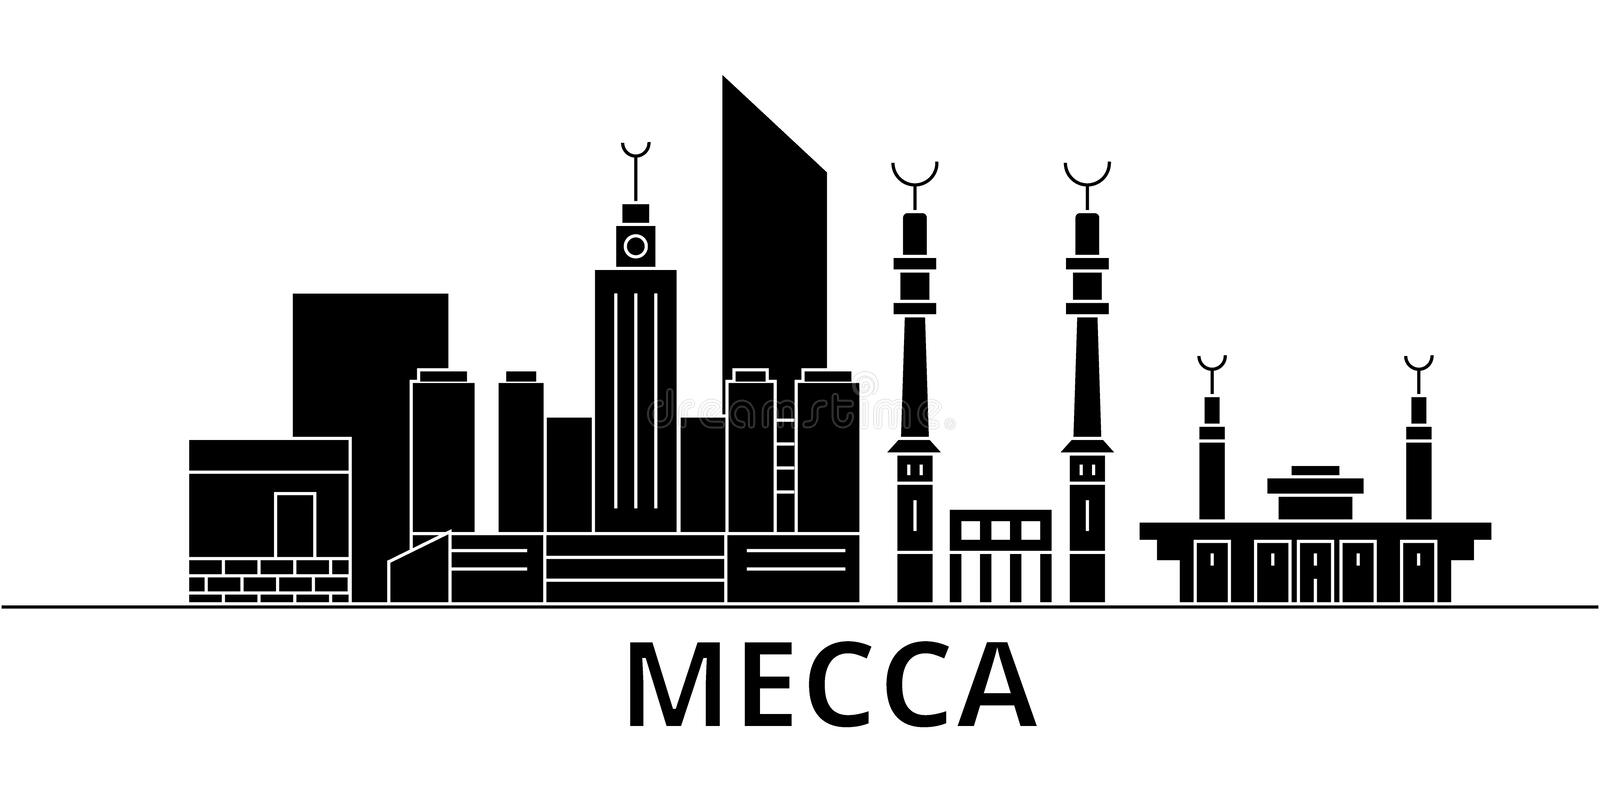 Mecca architecture vector city skyline, travel cityscape with landmarks, buildings, isolated sights on background. Mecca architecture vector city skyline, black vector illustration